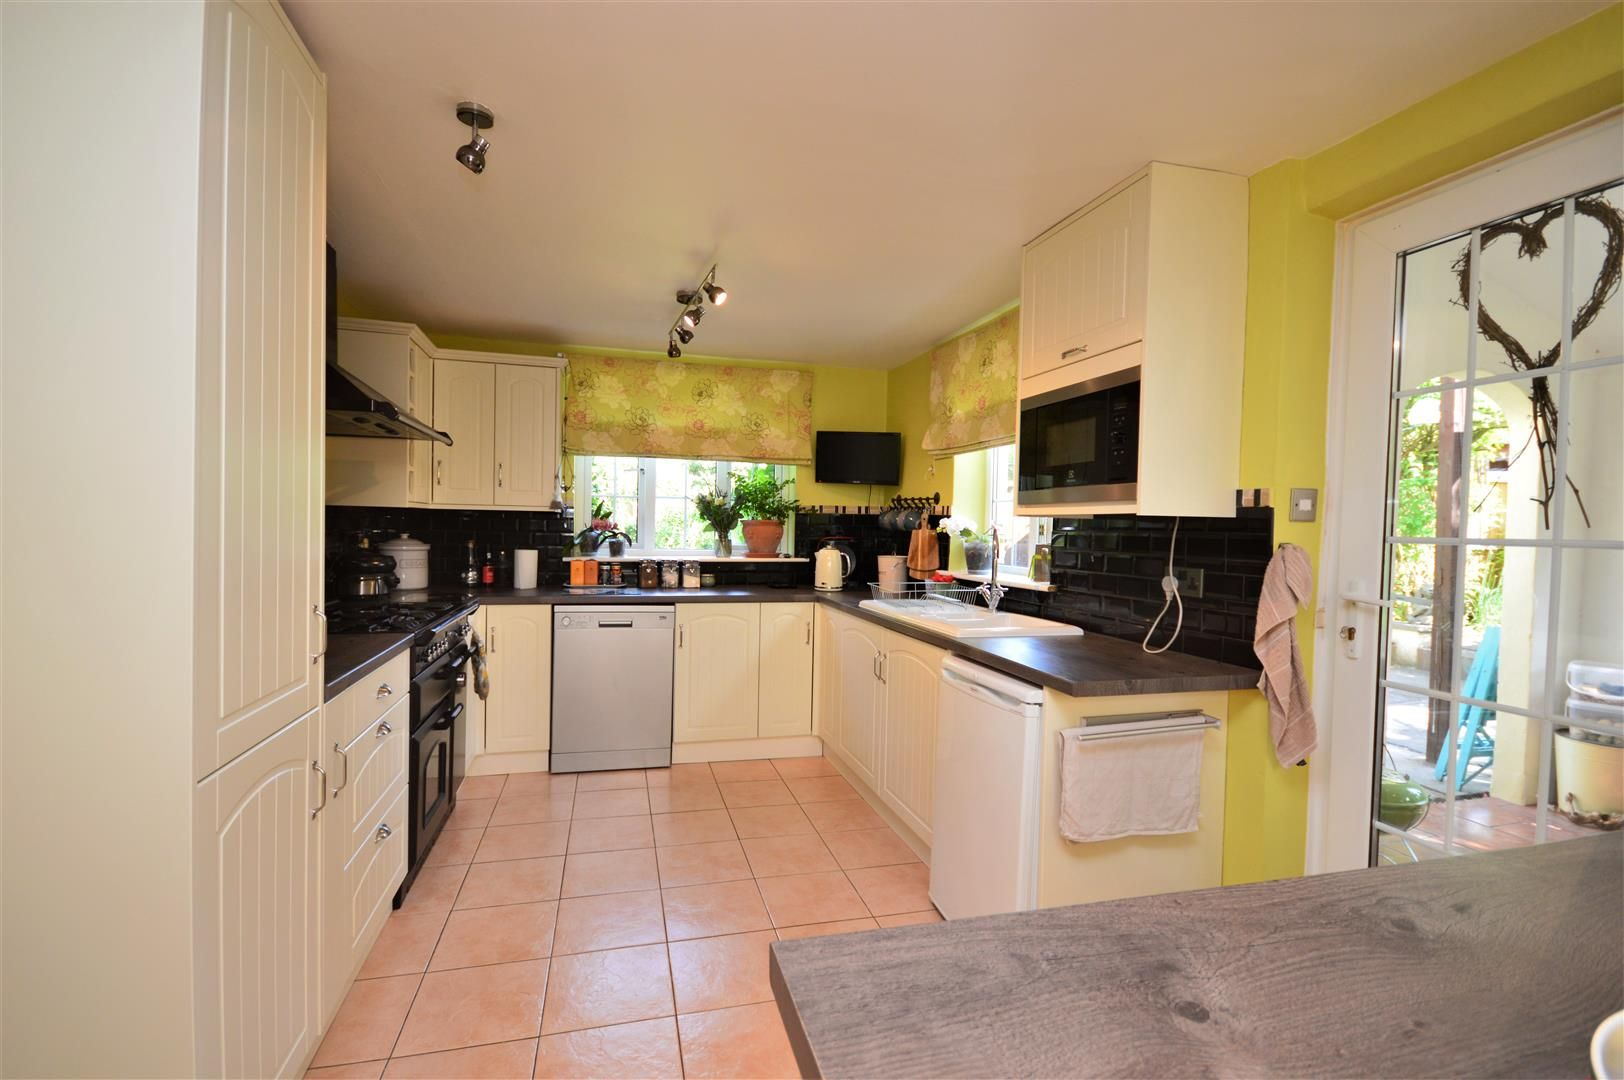 3 bed semi-detached for sale in Stretton Sugwas  - Property Image 7